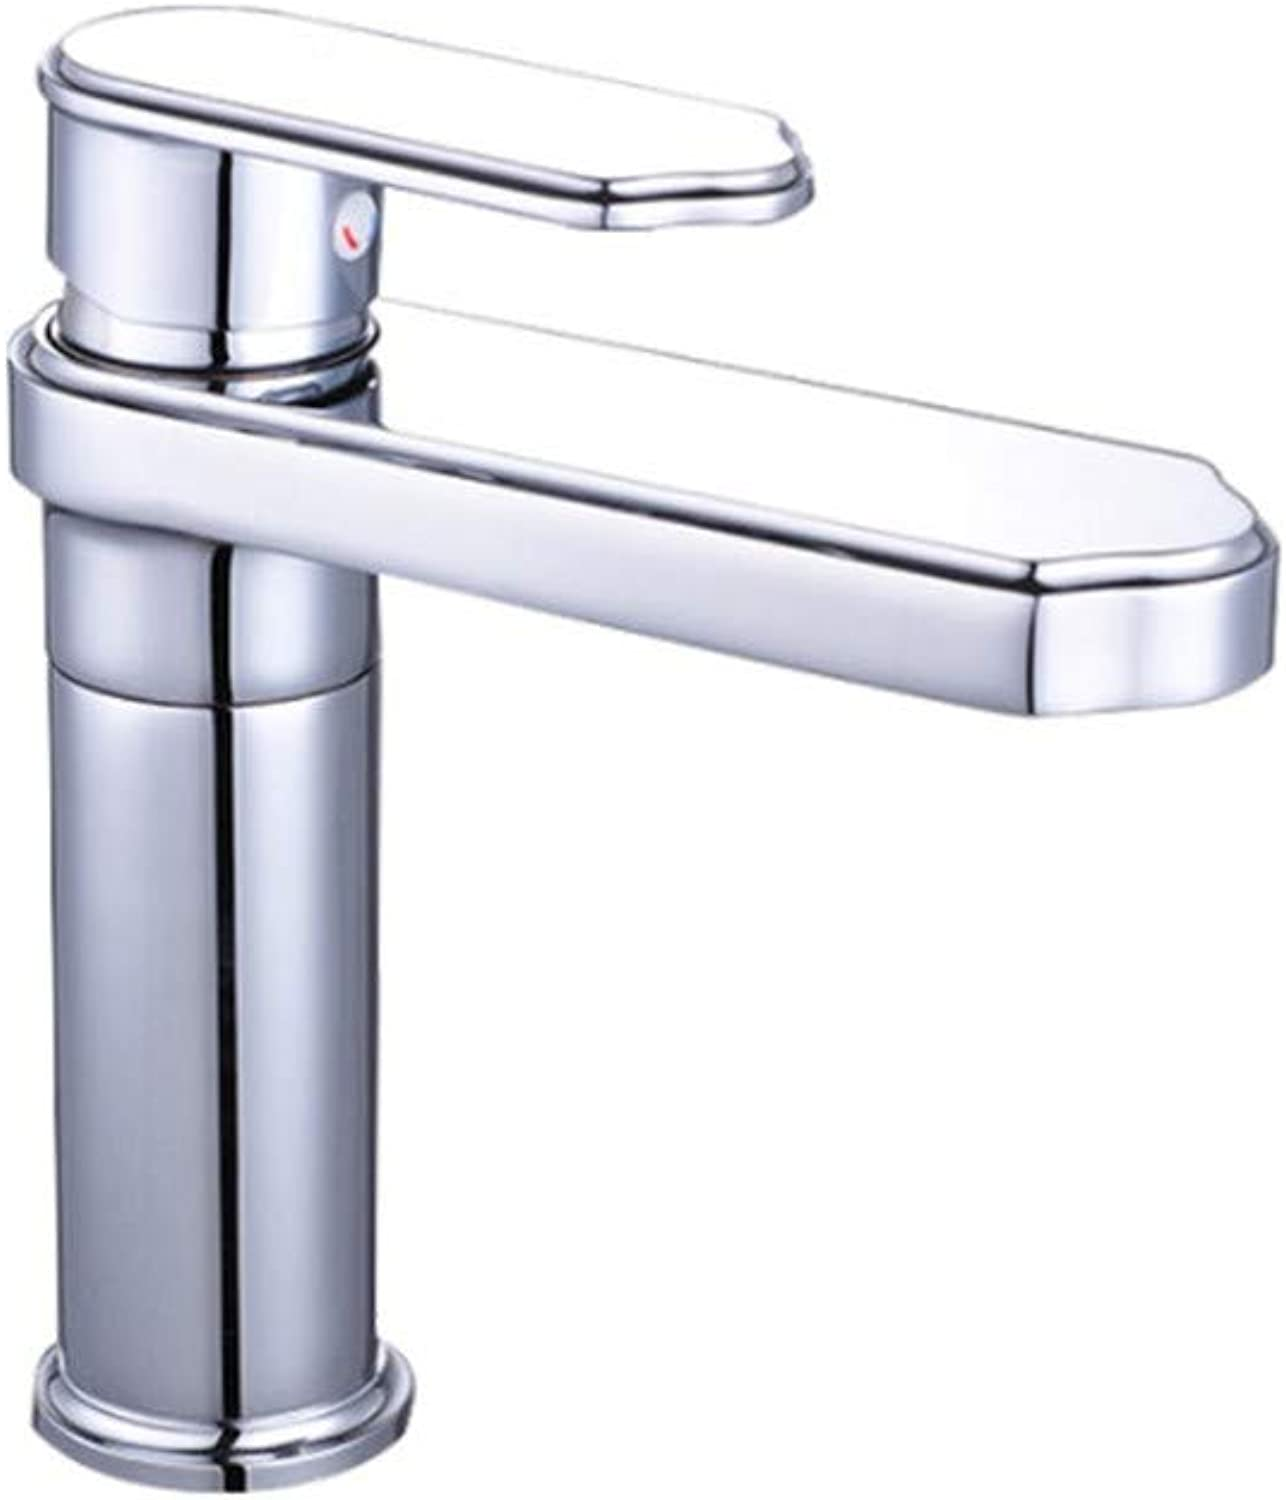 Basin Faucetface Basin Faucet Bathroom Washbasin Faucet Ceramic Disc Spool Single Hole Bathroom Basin Cold and Hot Faucet Bathroom Faucet Chrome Plating